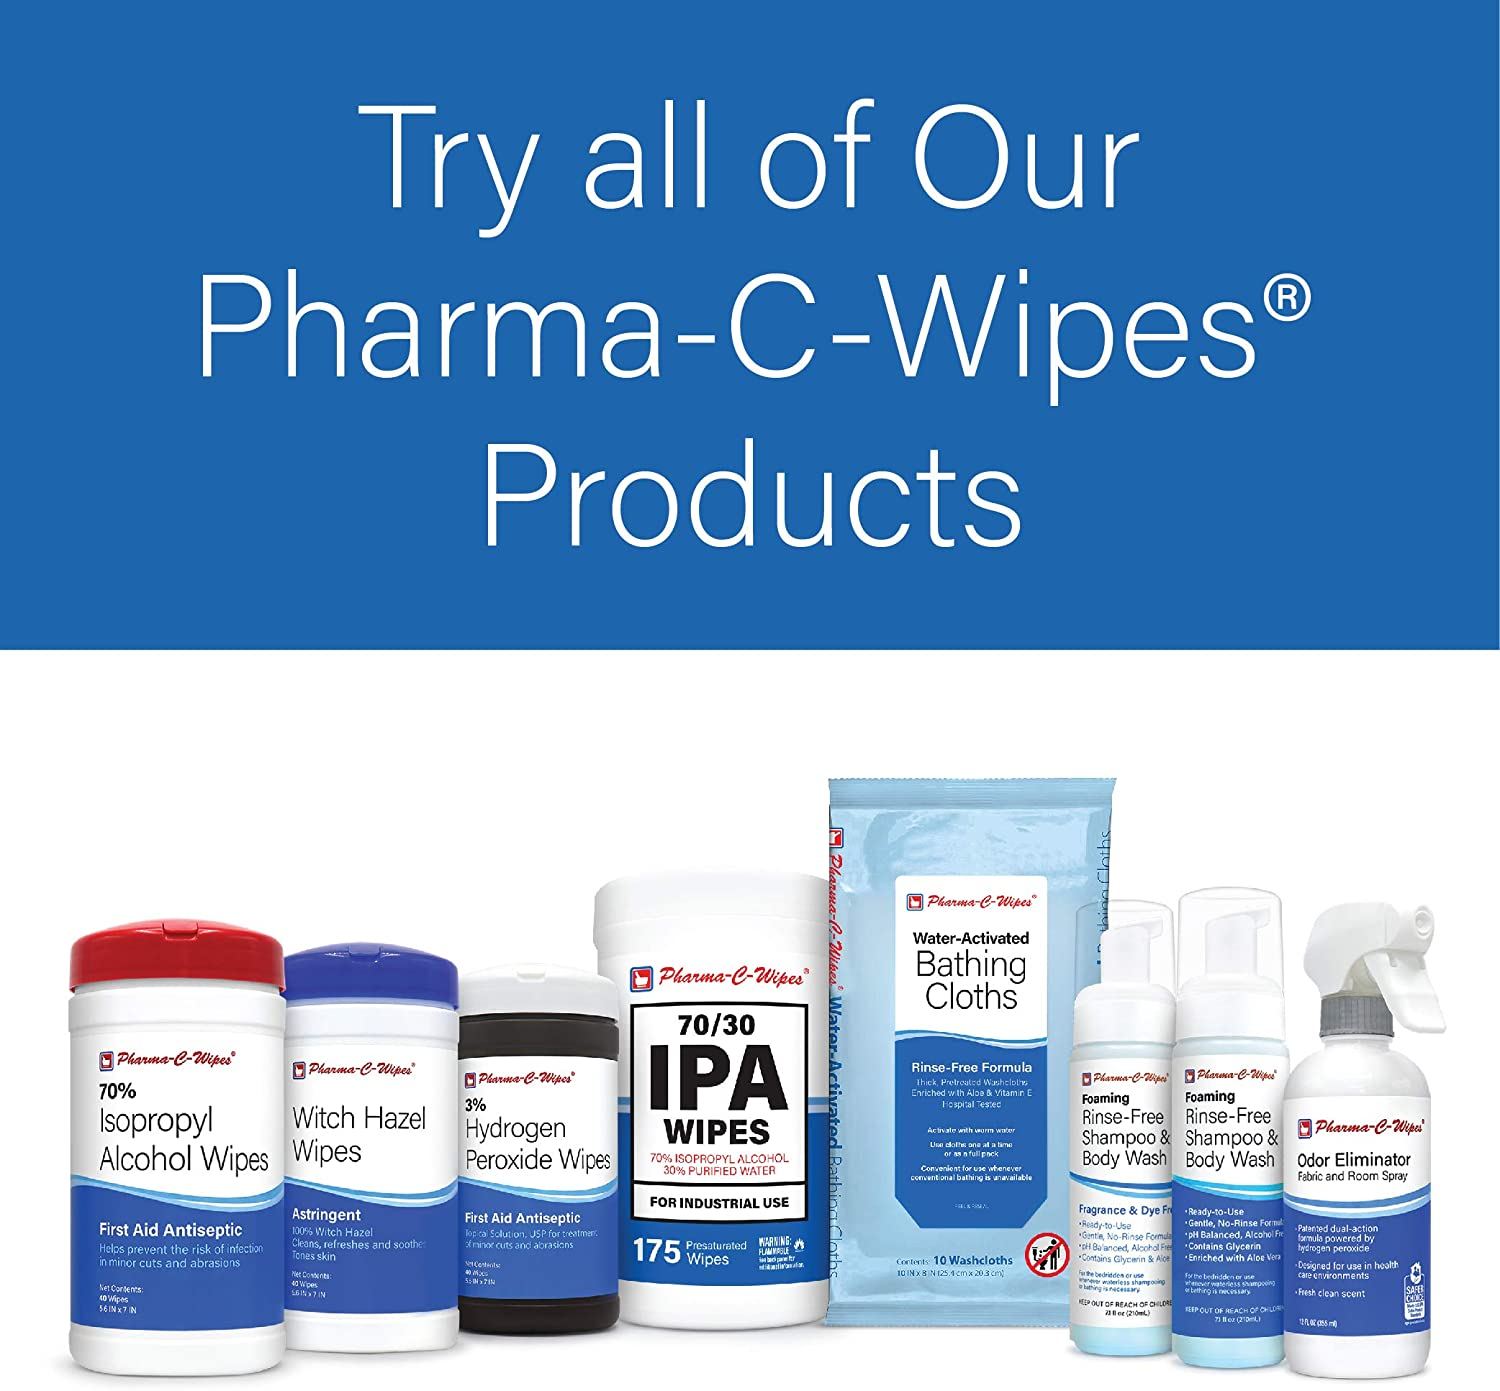 Pharma-C-Wipes Water Activated Bathing Cloths - Rinse Free - Thick, Pretreated Washcloths (6 Packs of 10 Cloths): Health & Personal Care